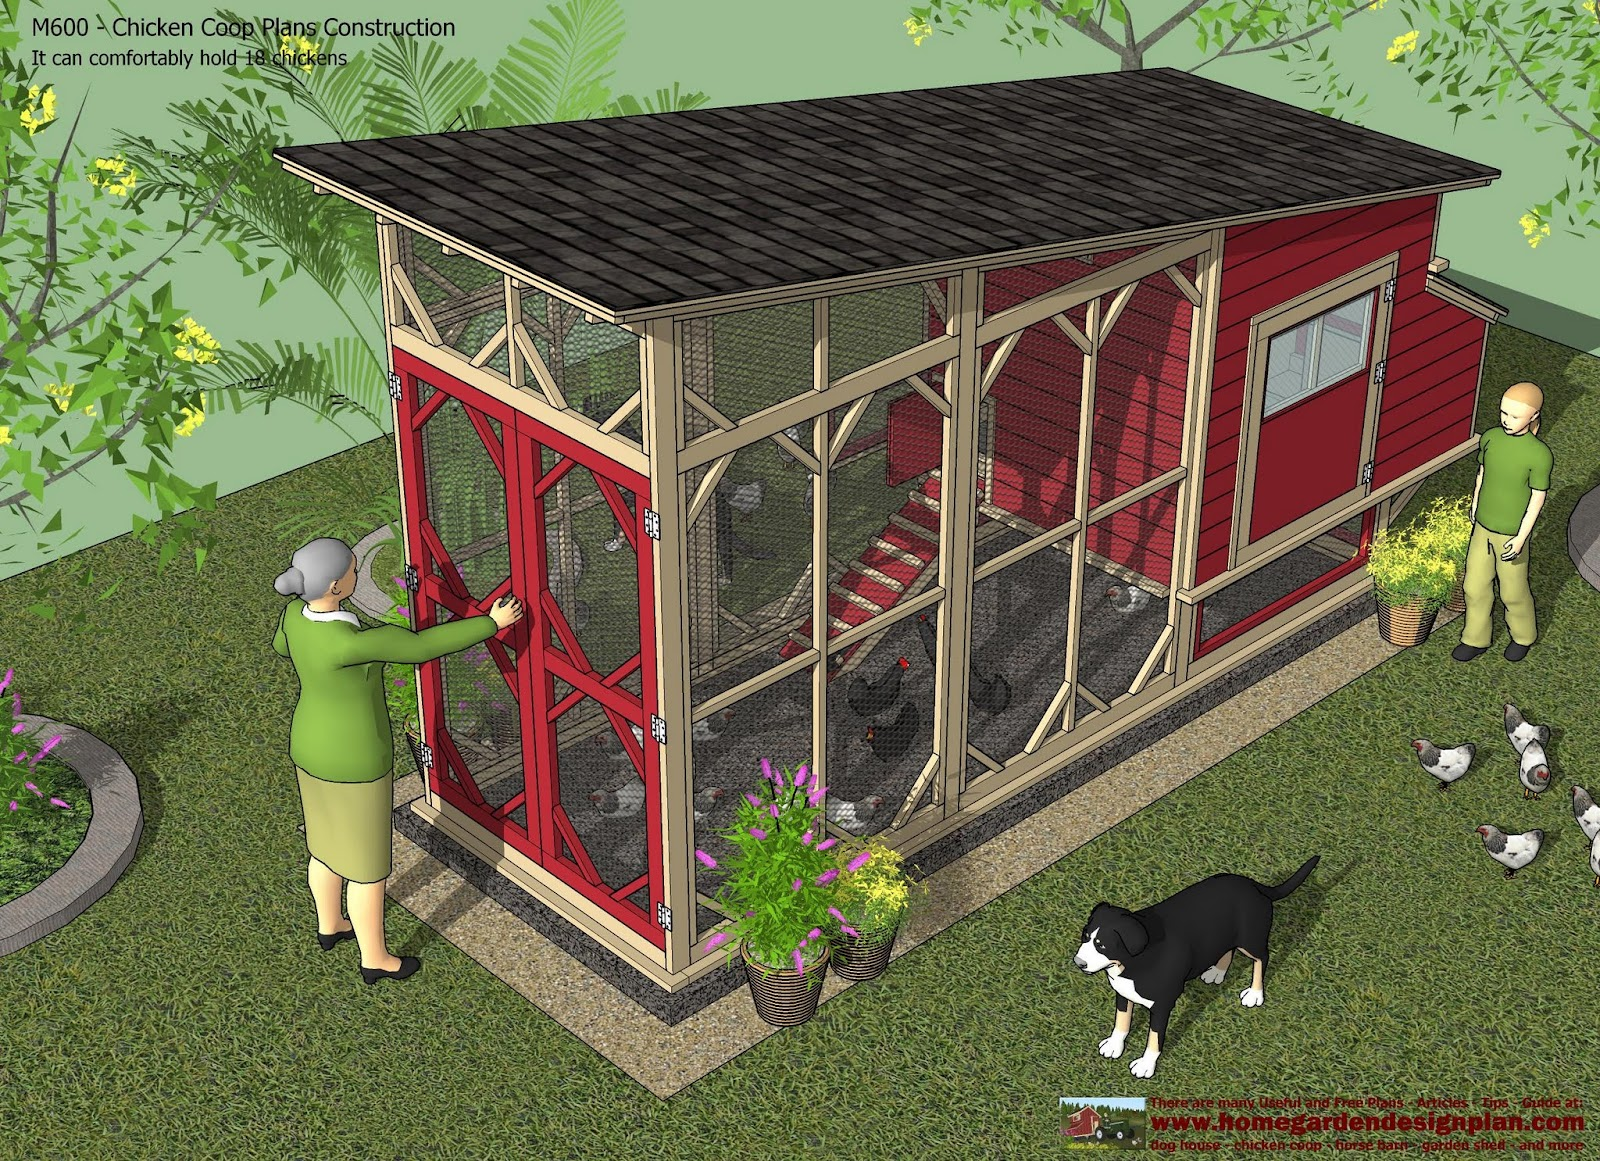 Home garden plans free plans for How to build a chicken hutch